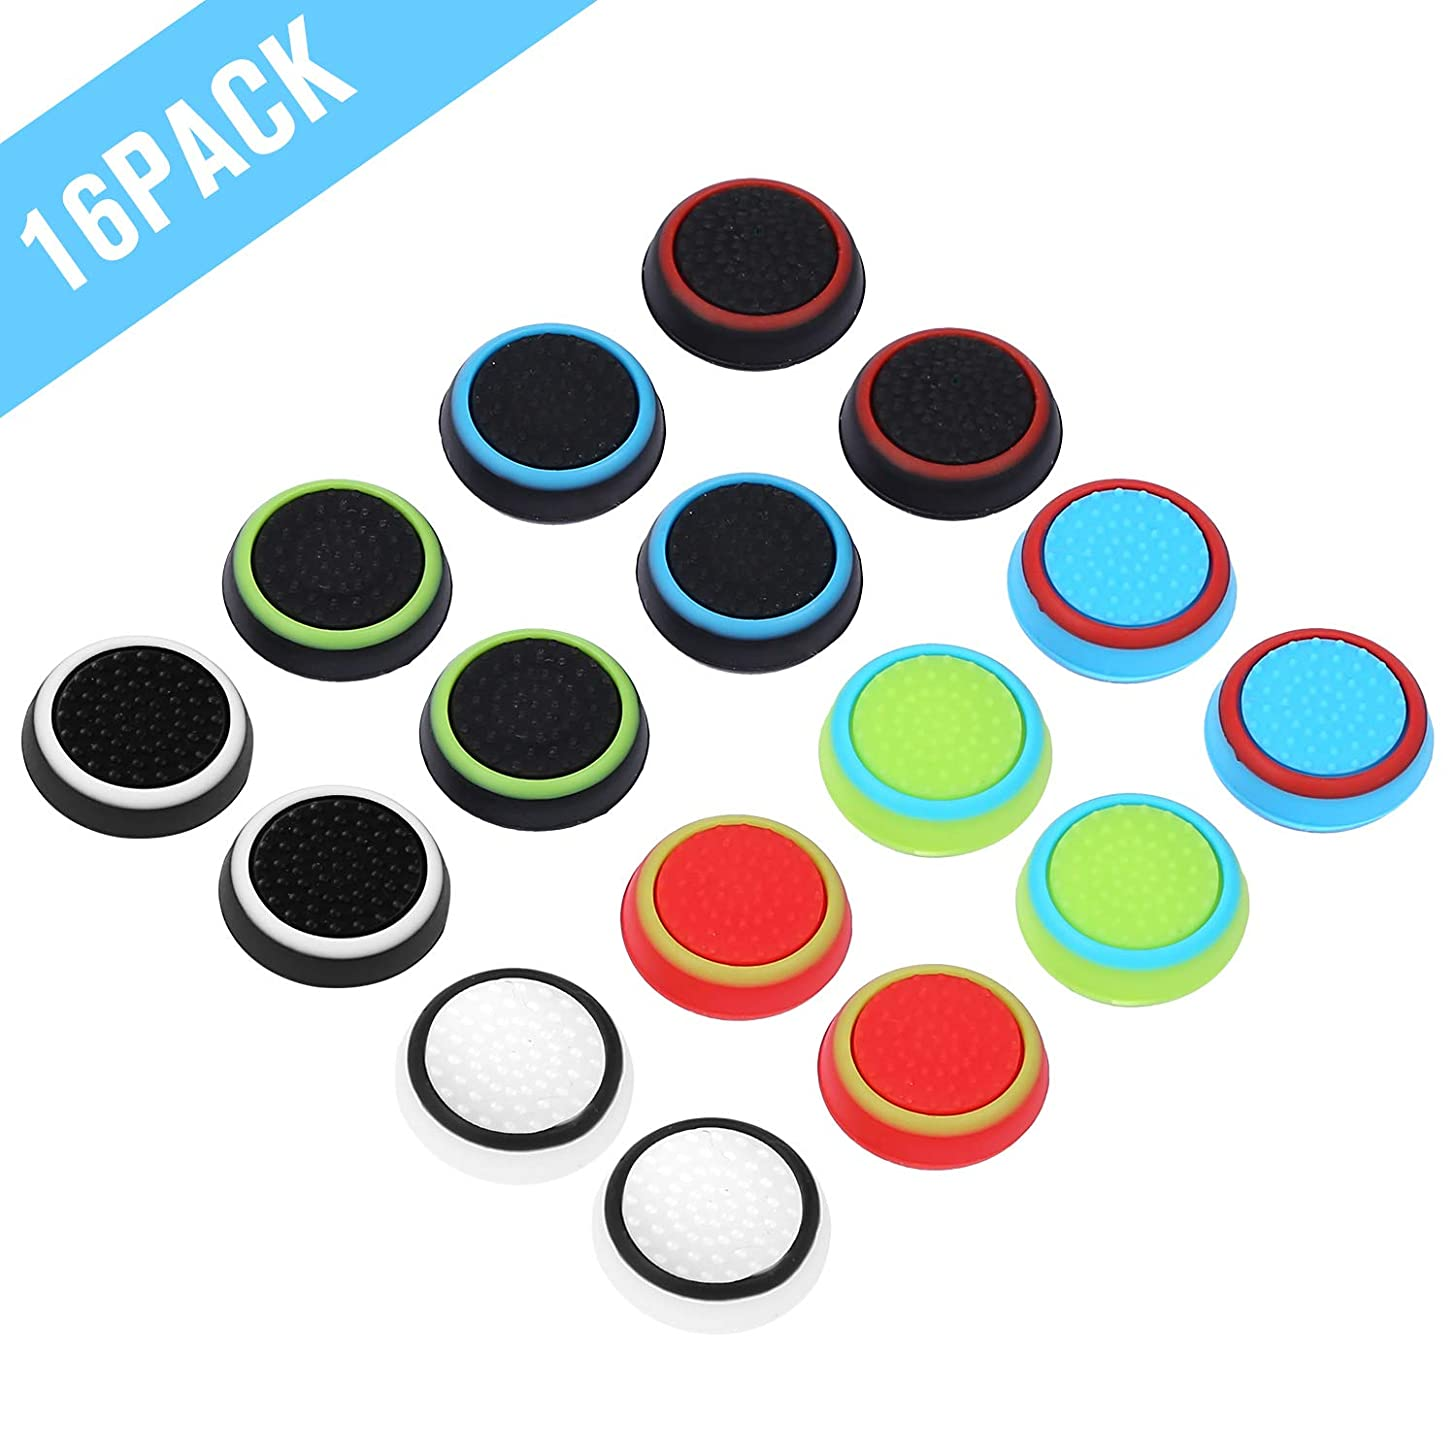 Obeka 8 Pairs Thumb Grips Silicone Analog Stick Covers Thumbstick Controller Replacement Joystick Cap Compatible PS4 PS3 PS2 Xbox One Xbox 360 Wii U – Assorted